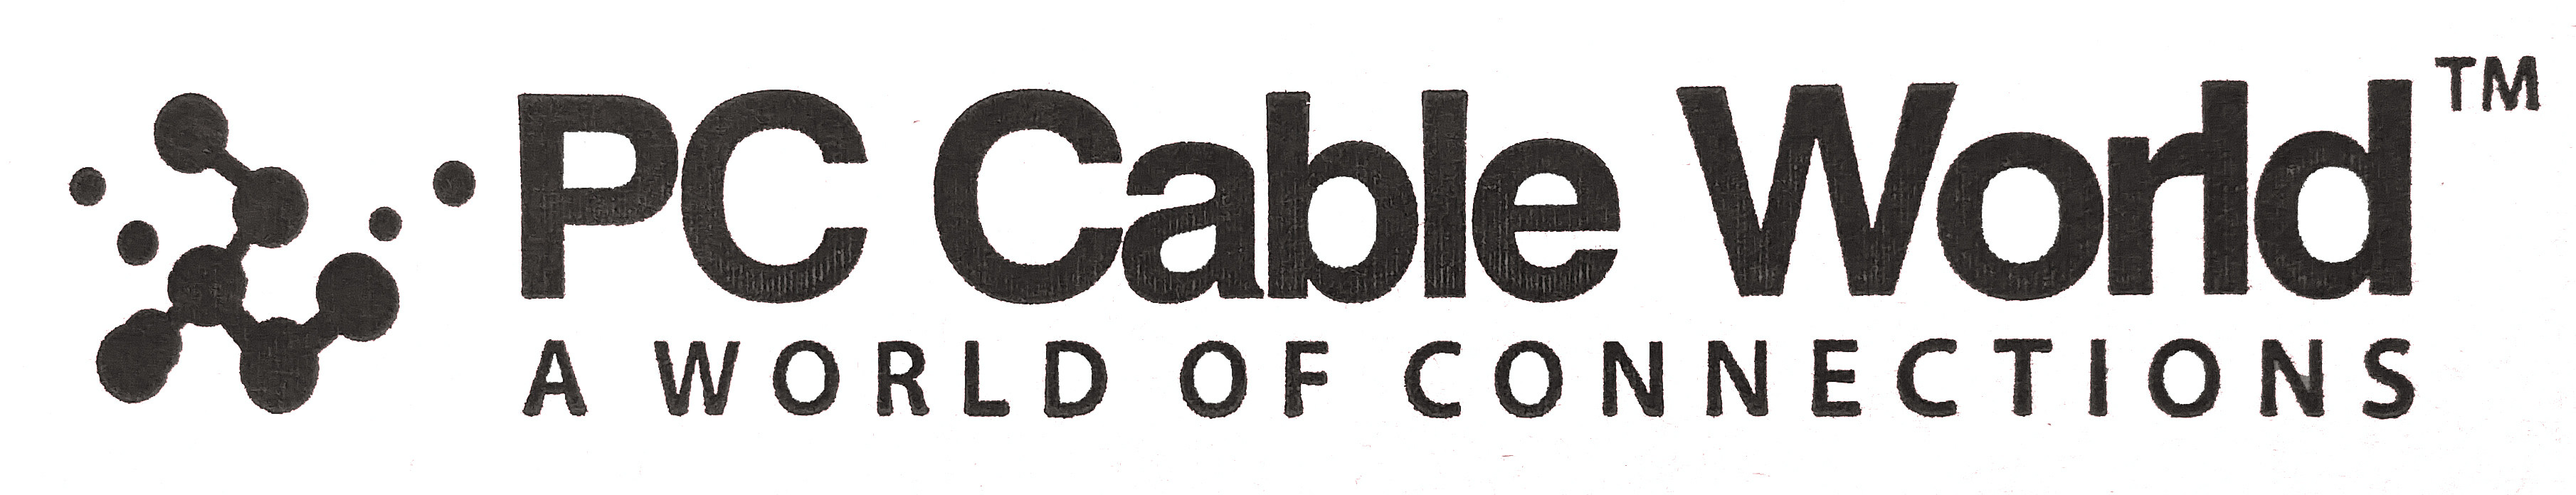 PC Cable World